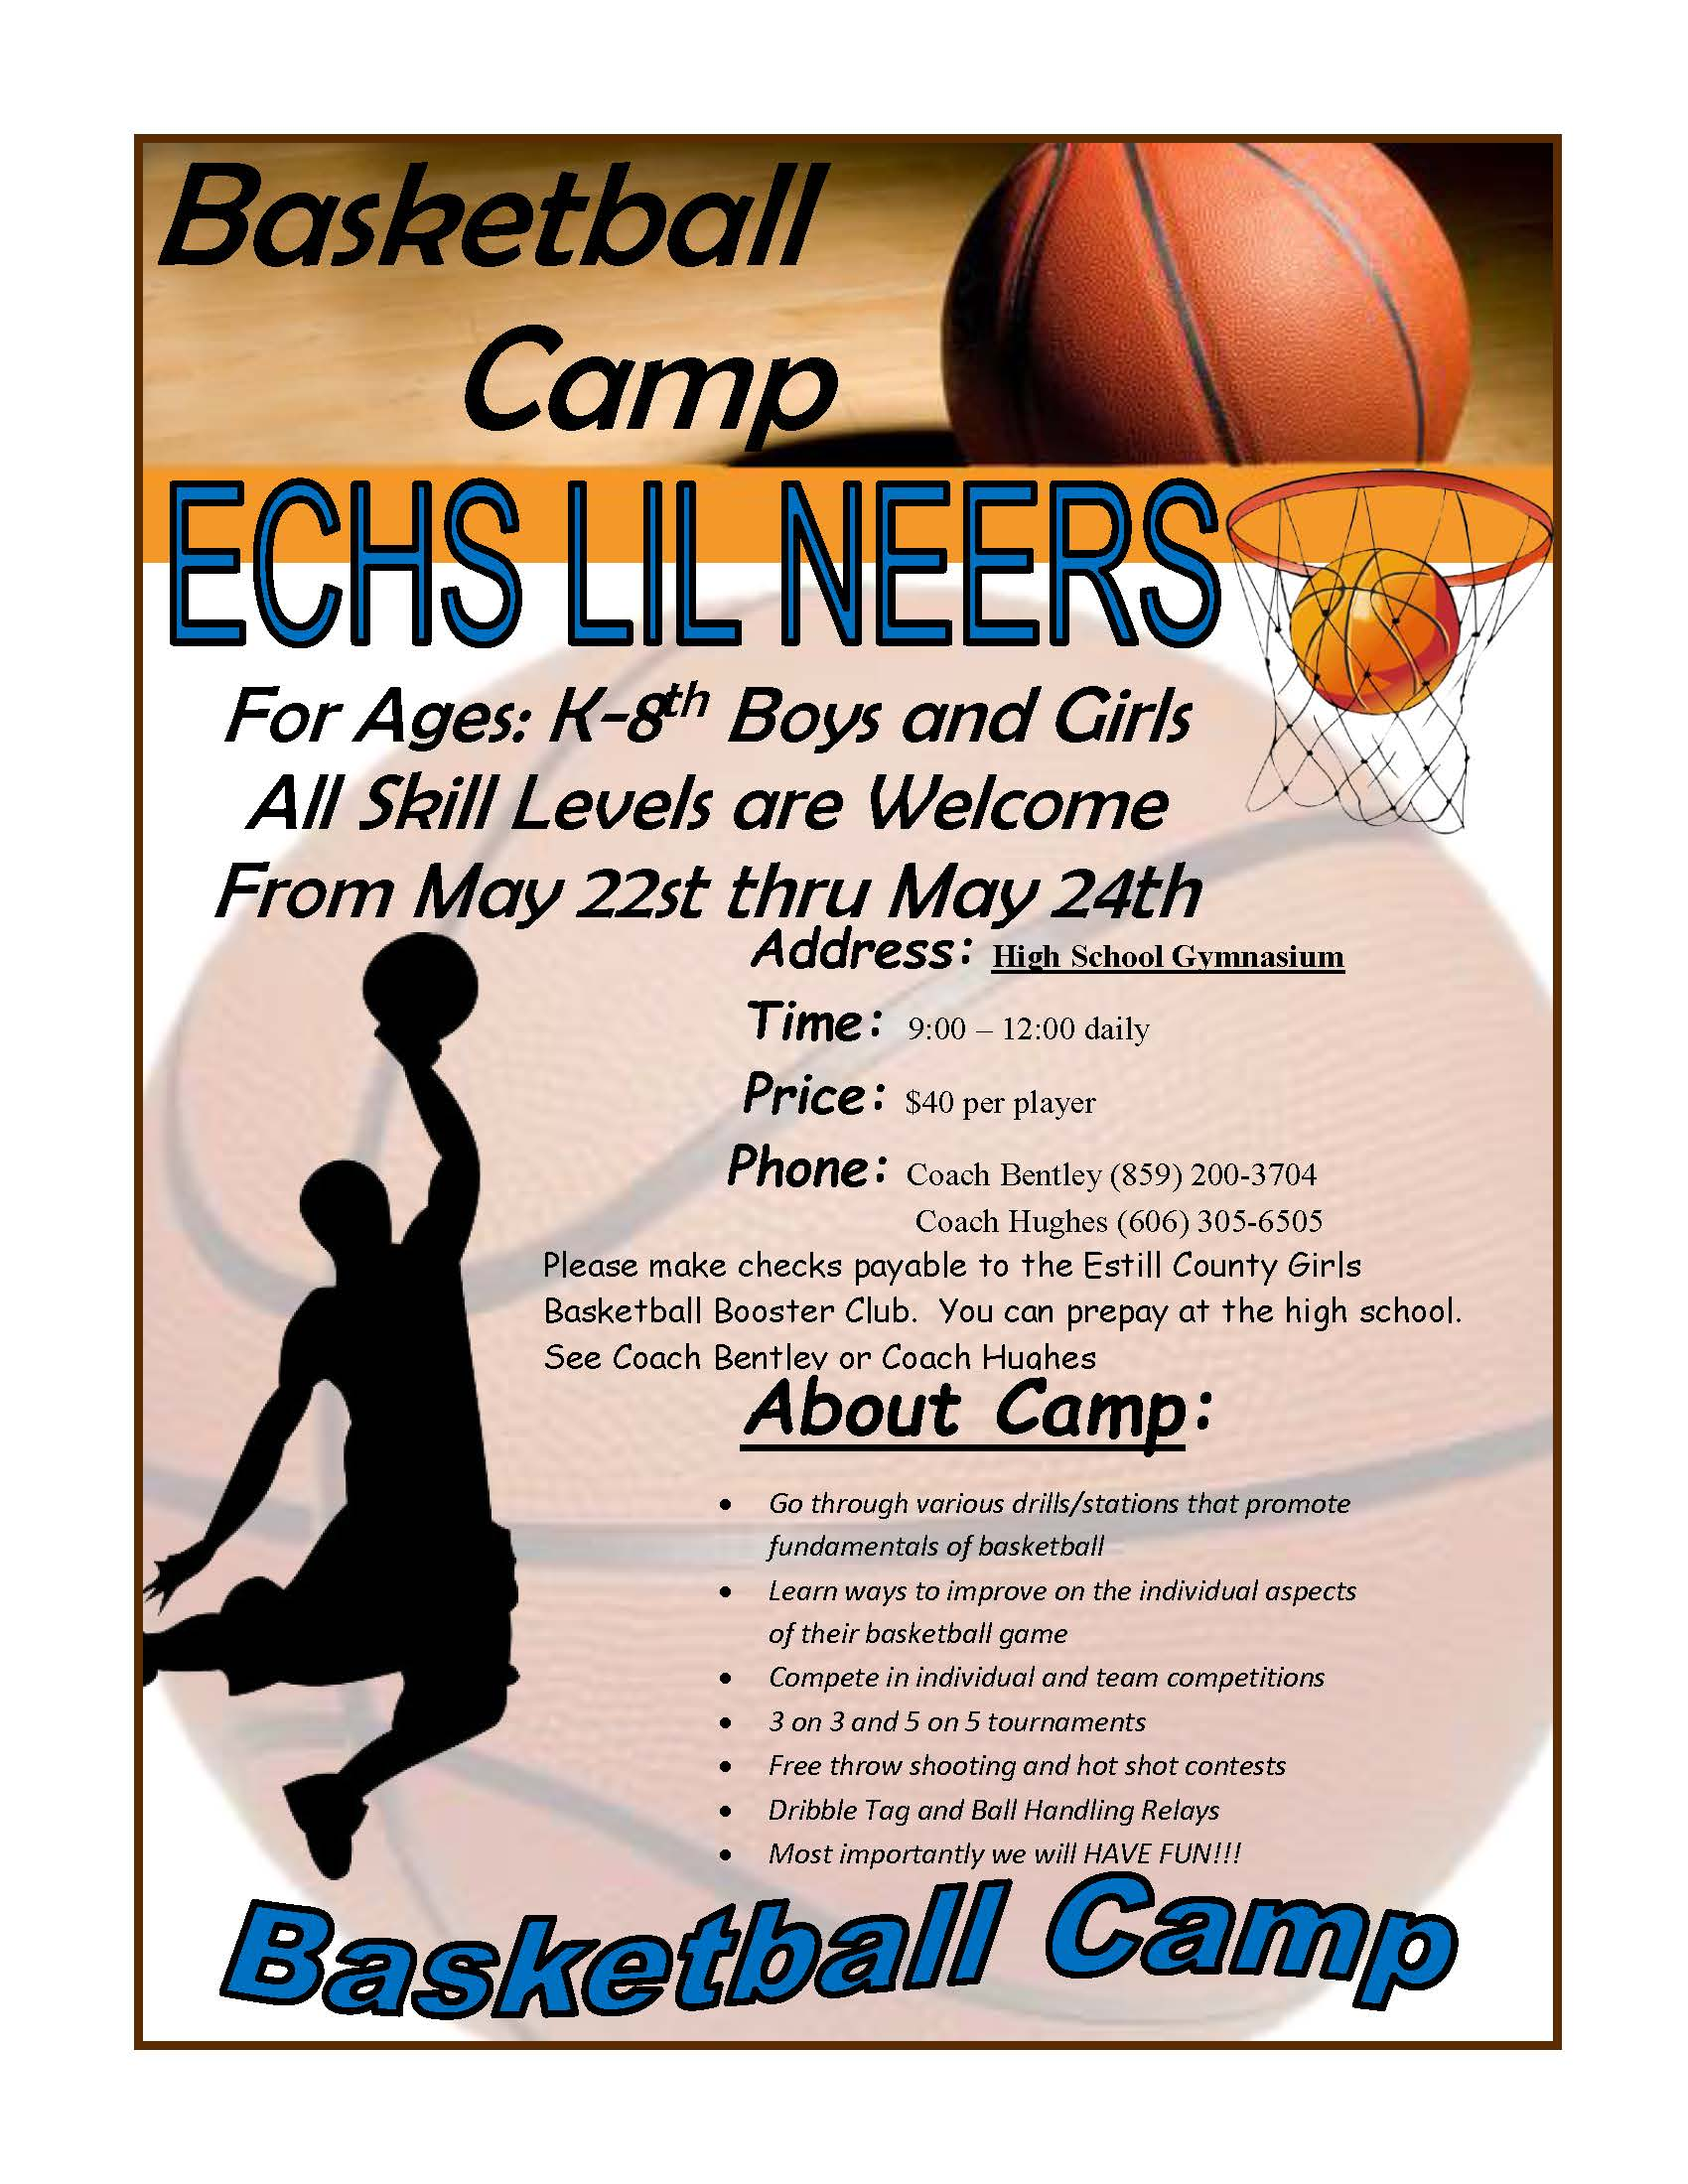 Lil' Neers Basketball Camp